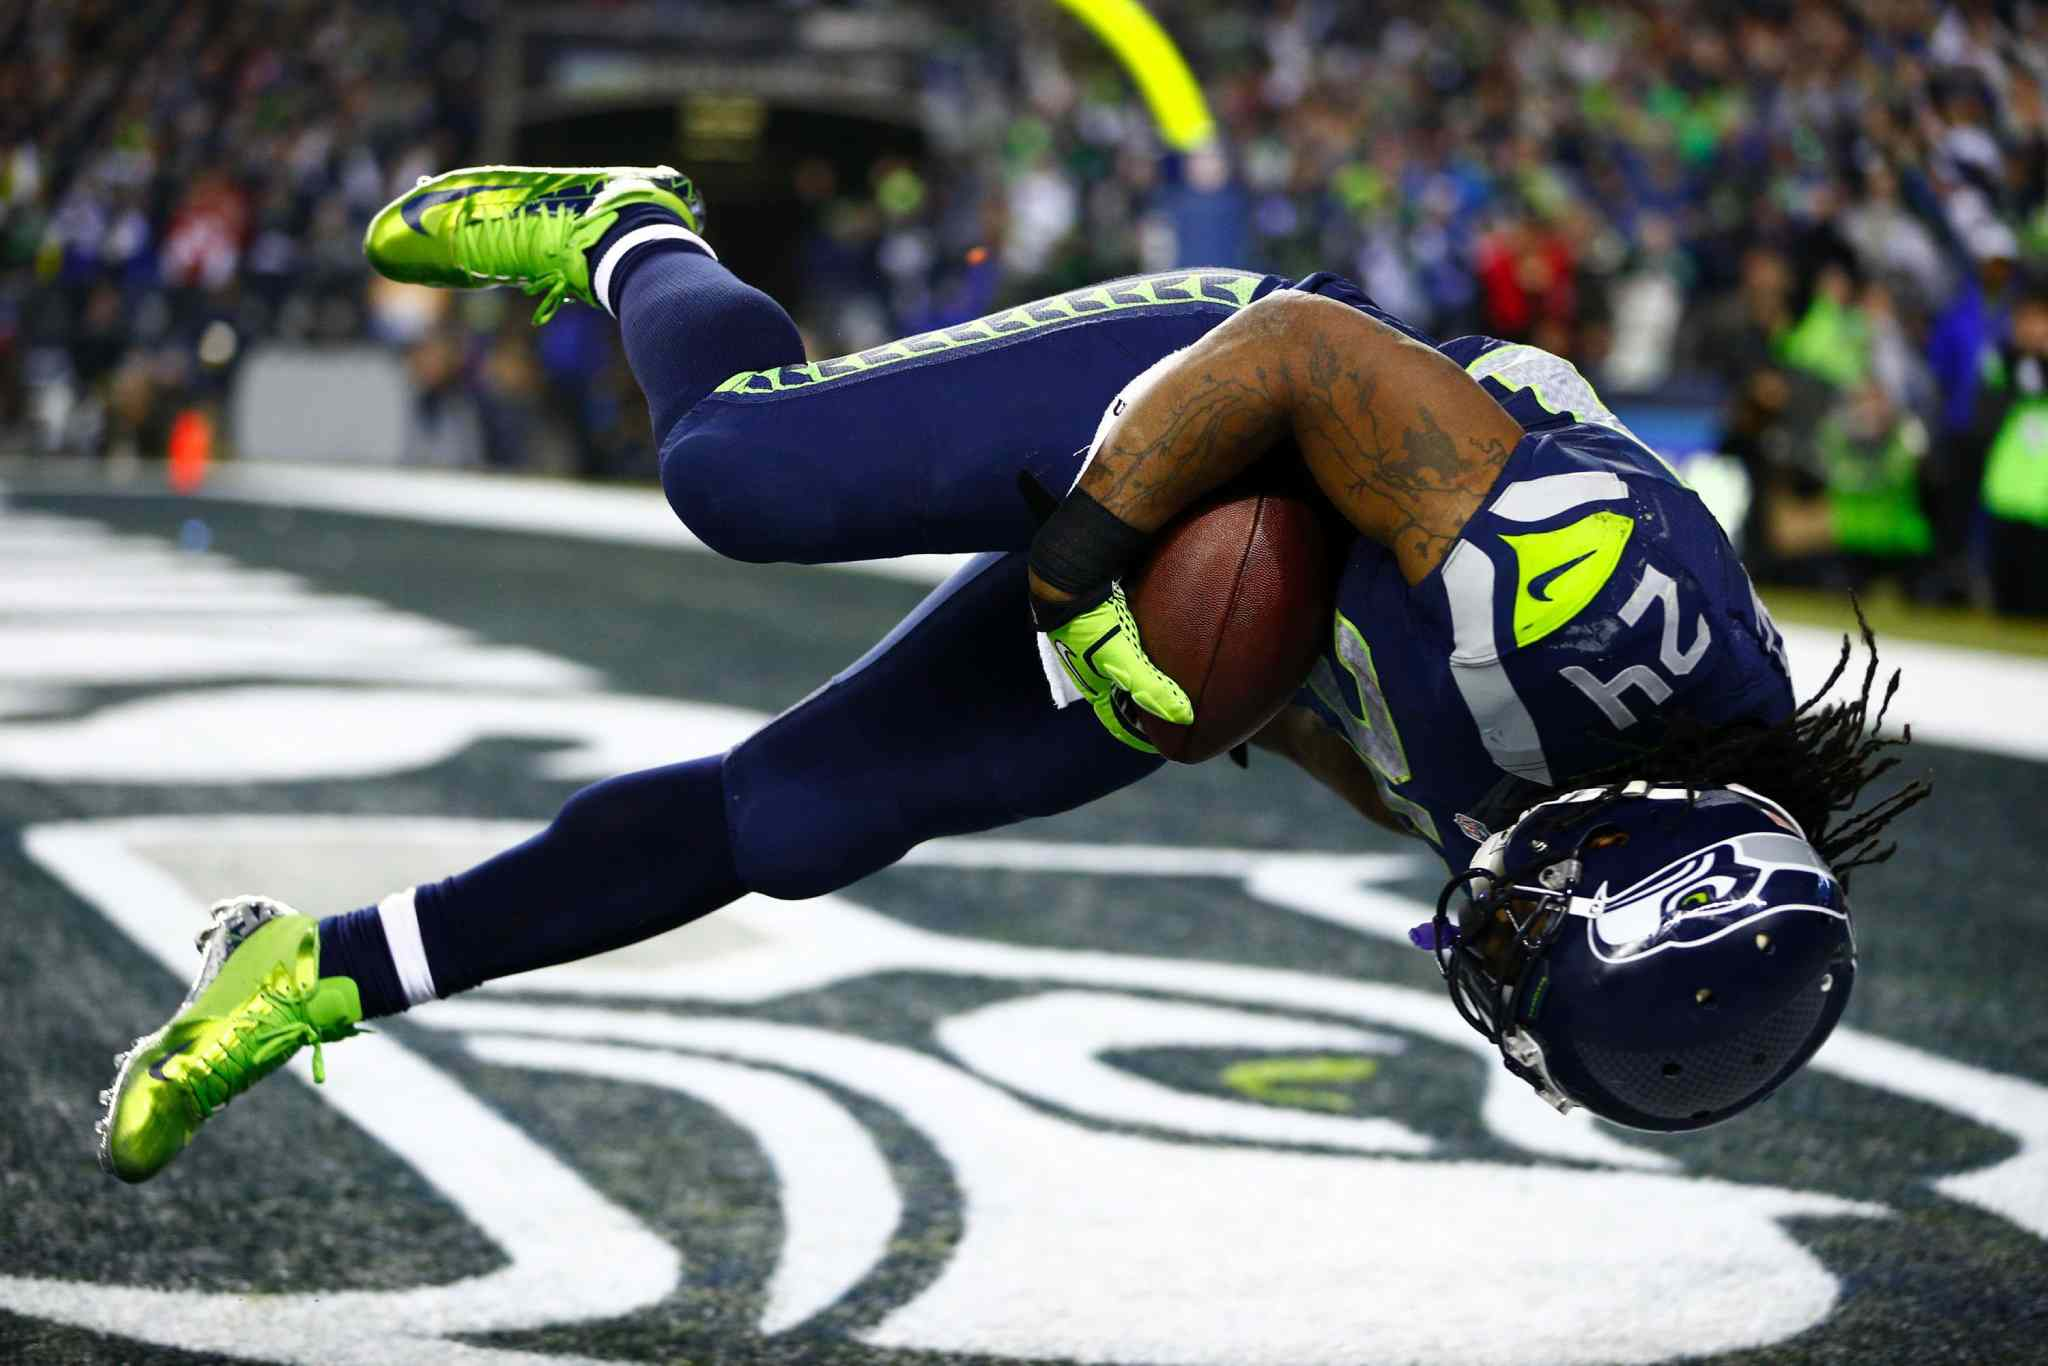 Seahawks running back Marshawn Lynch dives in to the end zone for a touchdown during the second half of the NFC championship.